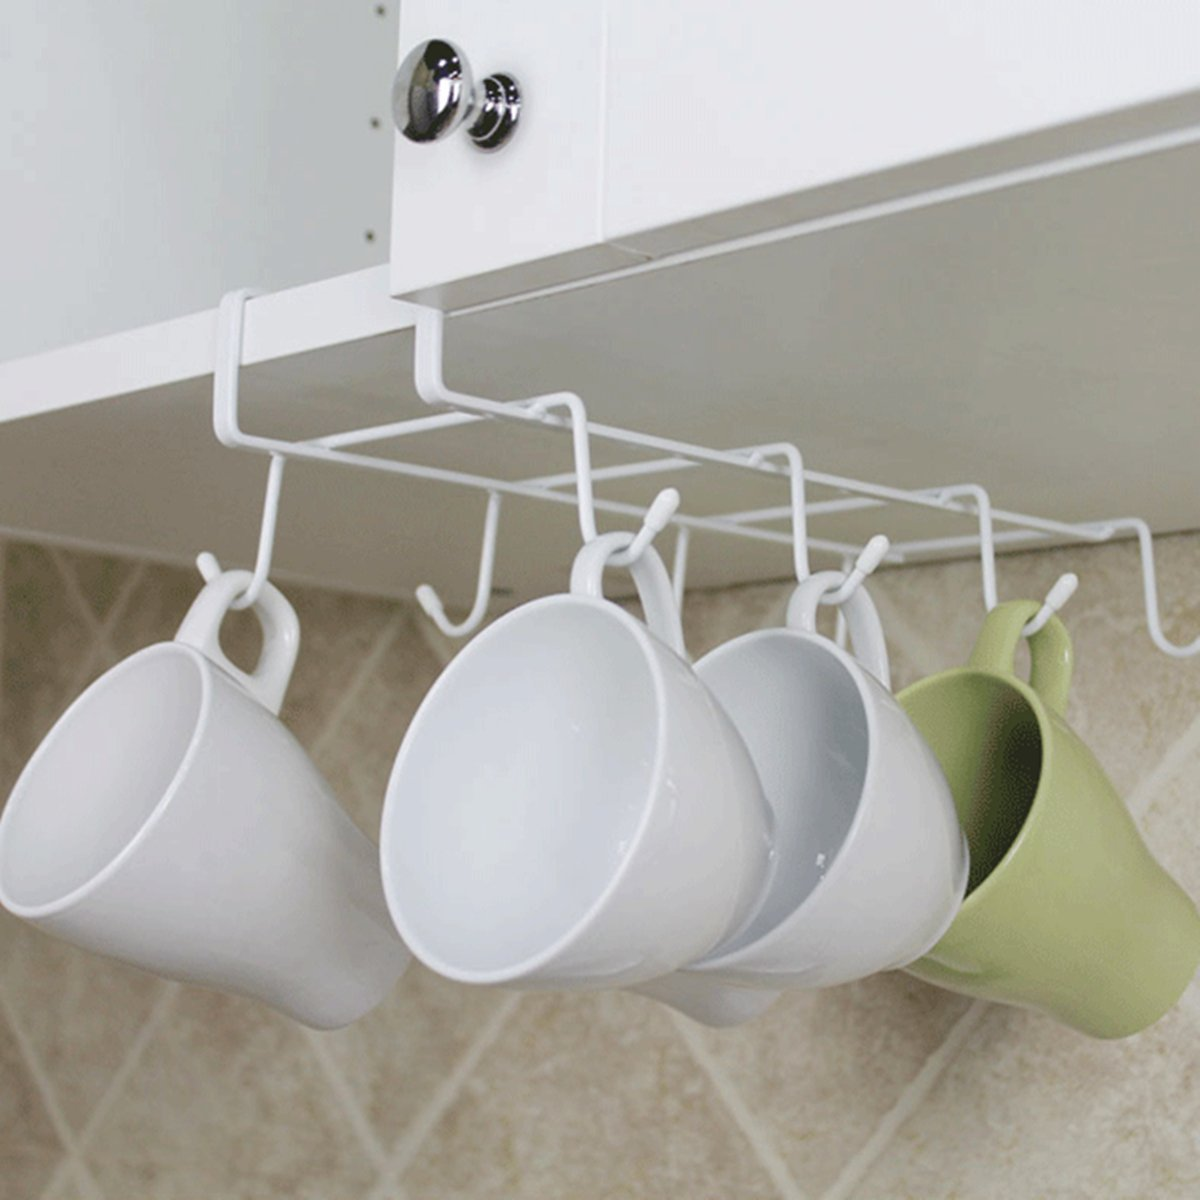 Fashionclubs 8 Hook Under Shelf Mugs Cups Wine Glasses Storage Drying Holder Rack,Cabinet Hanging Organizer Rack for Ties And Belts COMINHKPR131610